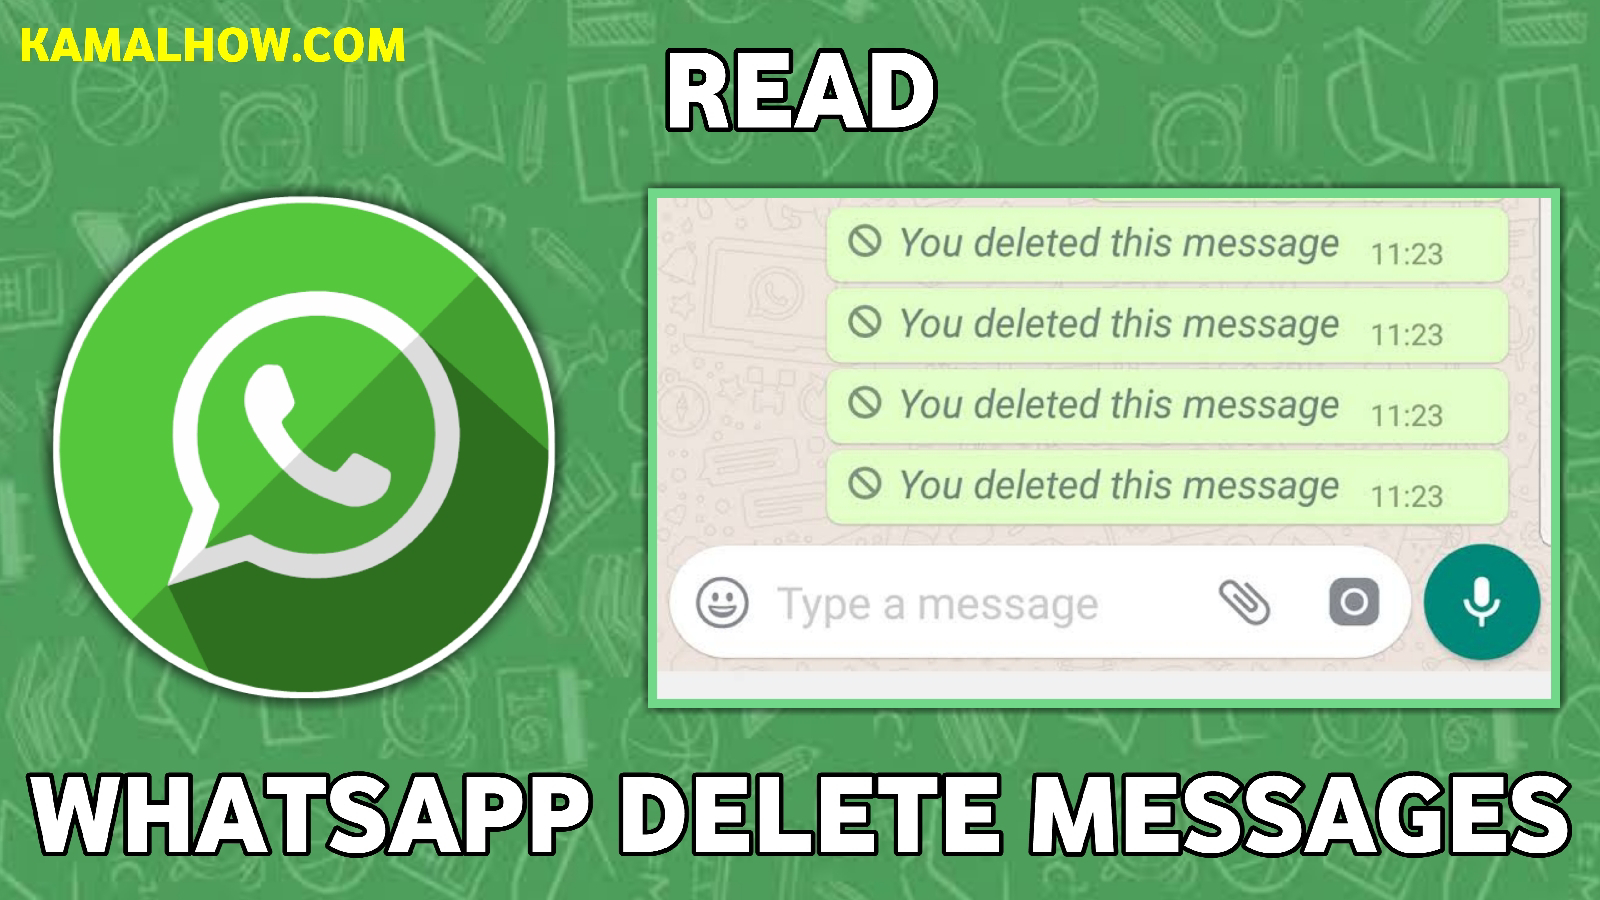 How to Read a Deleted WhatsApp Messages, read deleted whatsapp messages app, read deleted whatsapp messages without using app, read whatsapp messages without opening whatsapp, read whatsapp messages without bluetick, read deleted messages whatsapp, read deleted messages on gb whatsapp, read deleted messages whatsapp android, whatsapp delete message kaise dekhe padhe, whatsapp delete message kaise dekh sakte hain